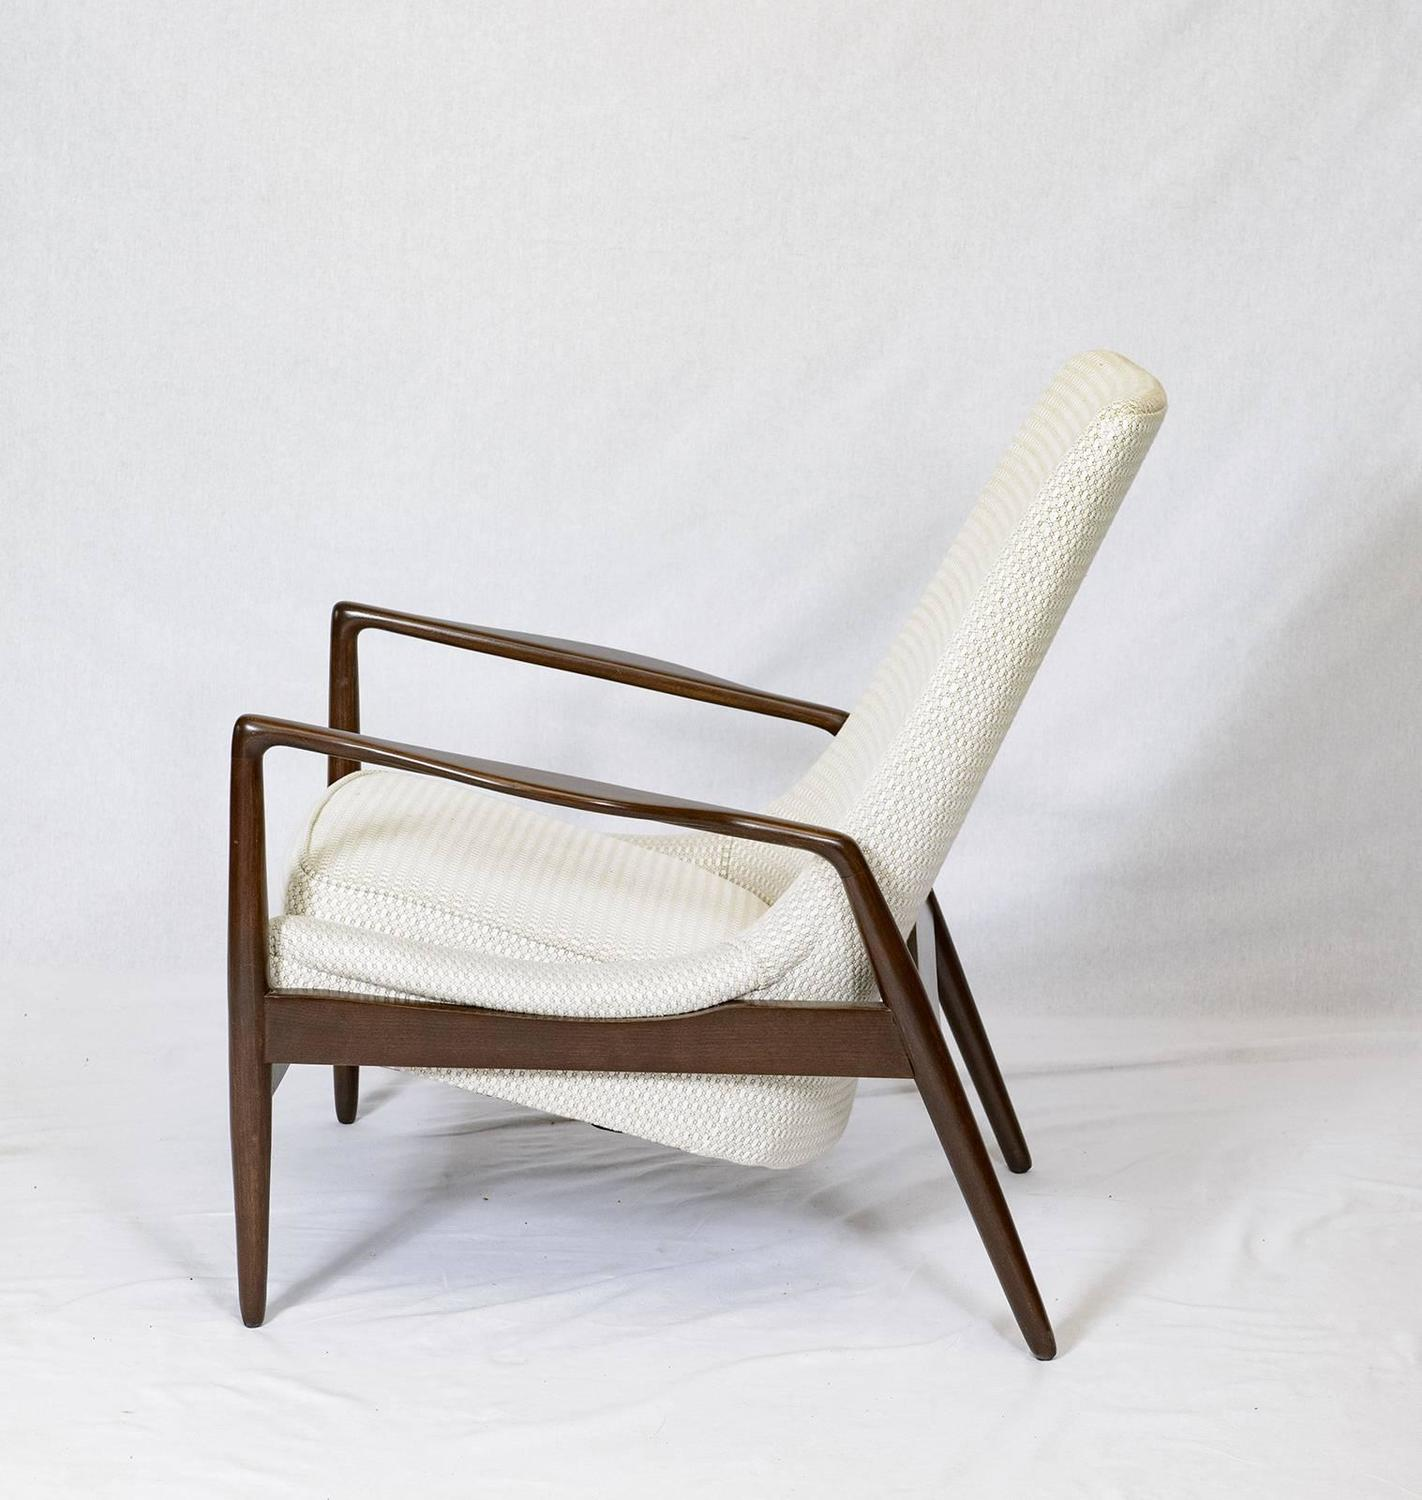 Danish Lounge Chair For Sale at 1stdibs